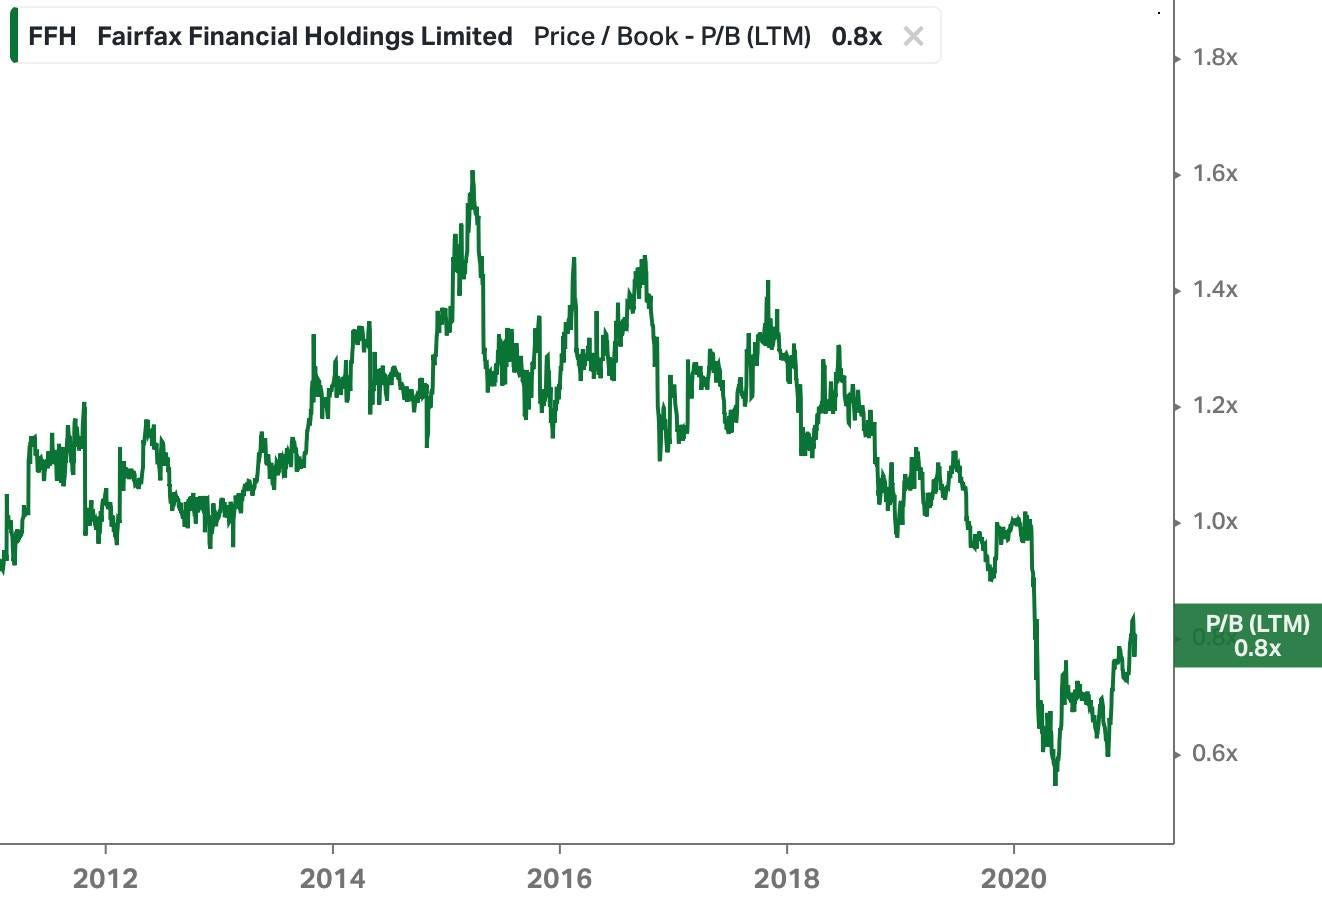 May be an image of text that says 'FFH Fairfax Financial Holdings Limited Price Book P/B (LTM) 0.8x 1.8x 1.6x 1.4x 1.2x 1.0x P/B (LTM) 0.8x 2012 2014 2016 0.6x 2018 2020'